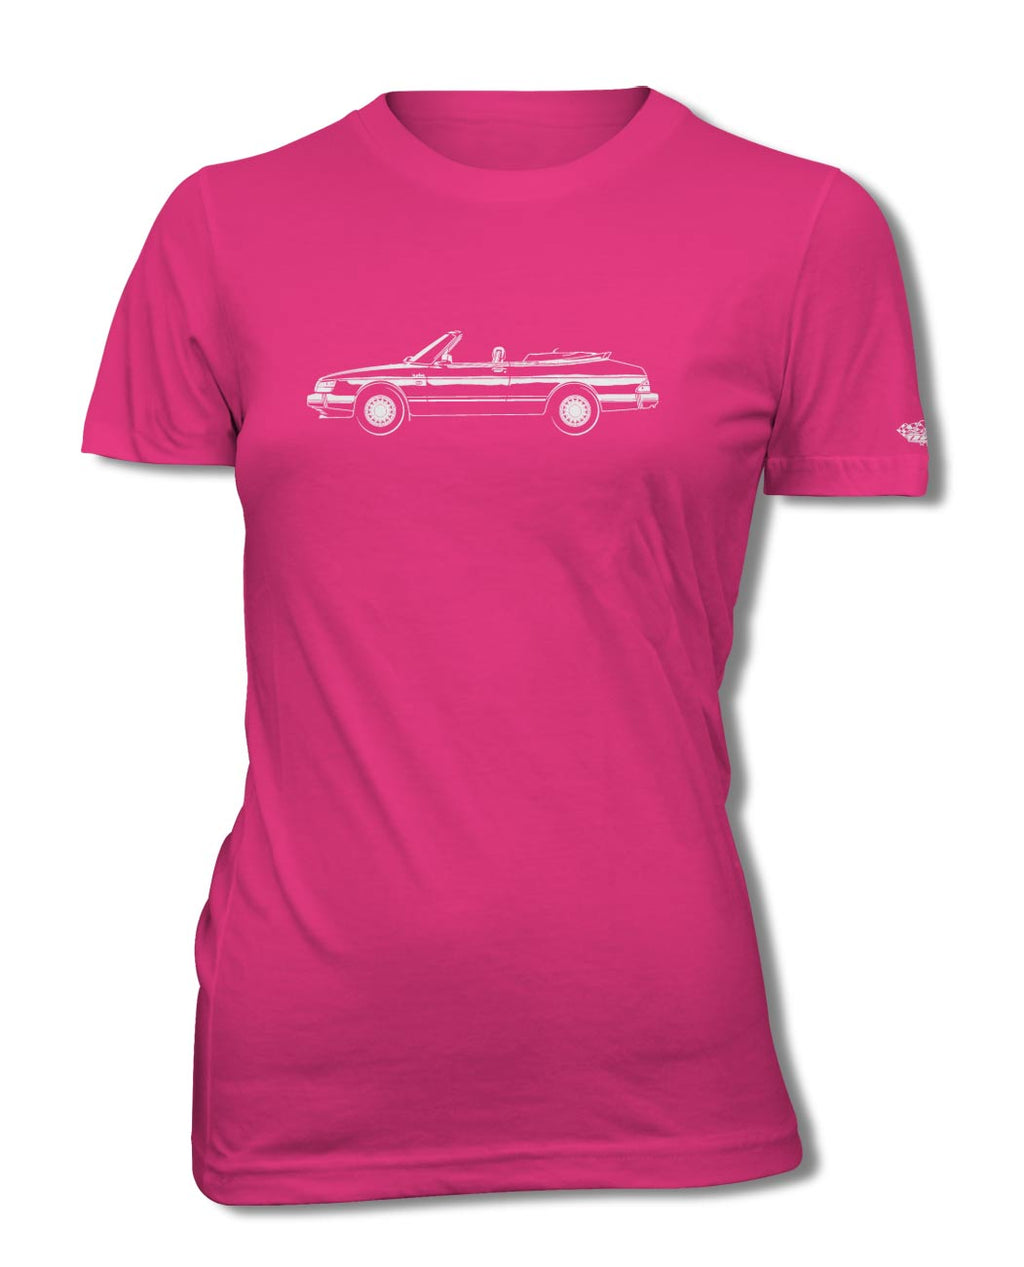 Saab 900 Turbo Convertible T-Shirt - Women - Side View